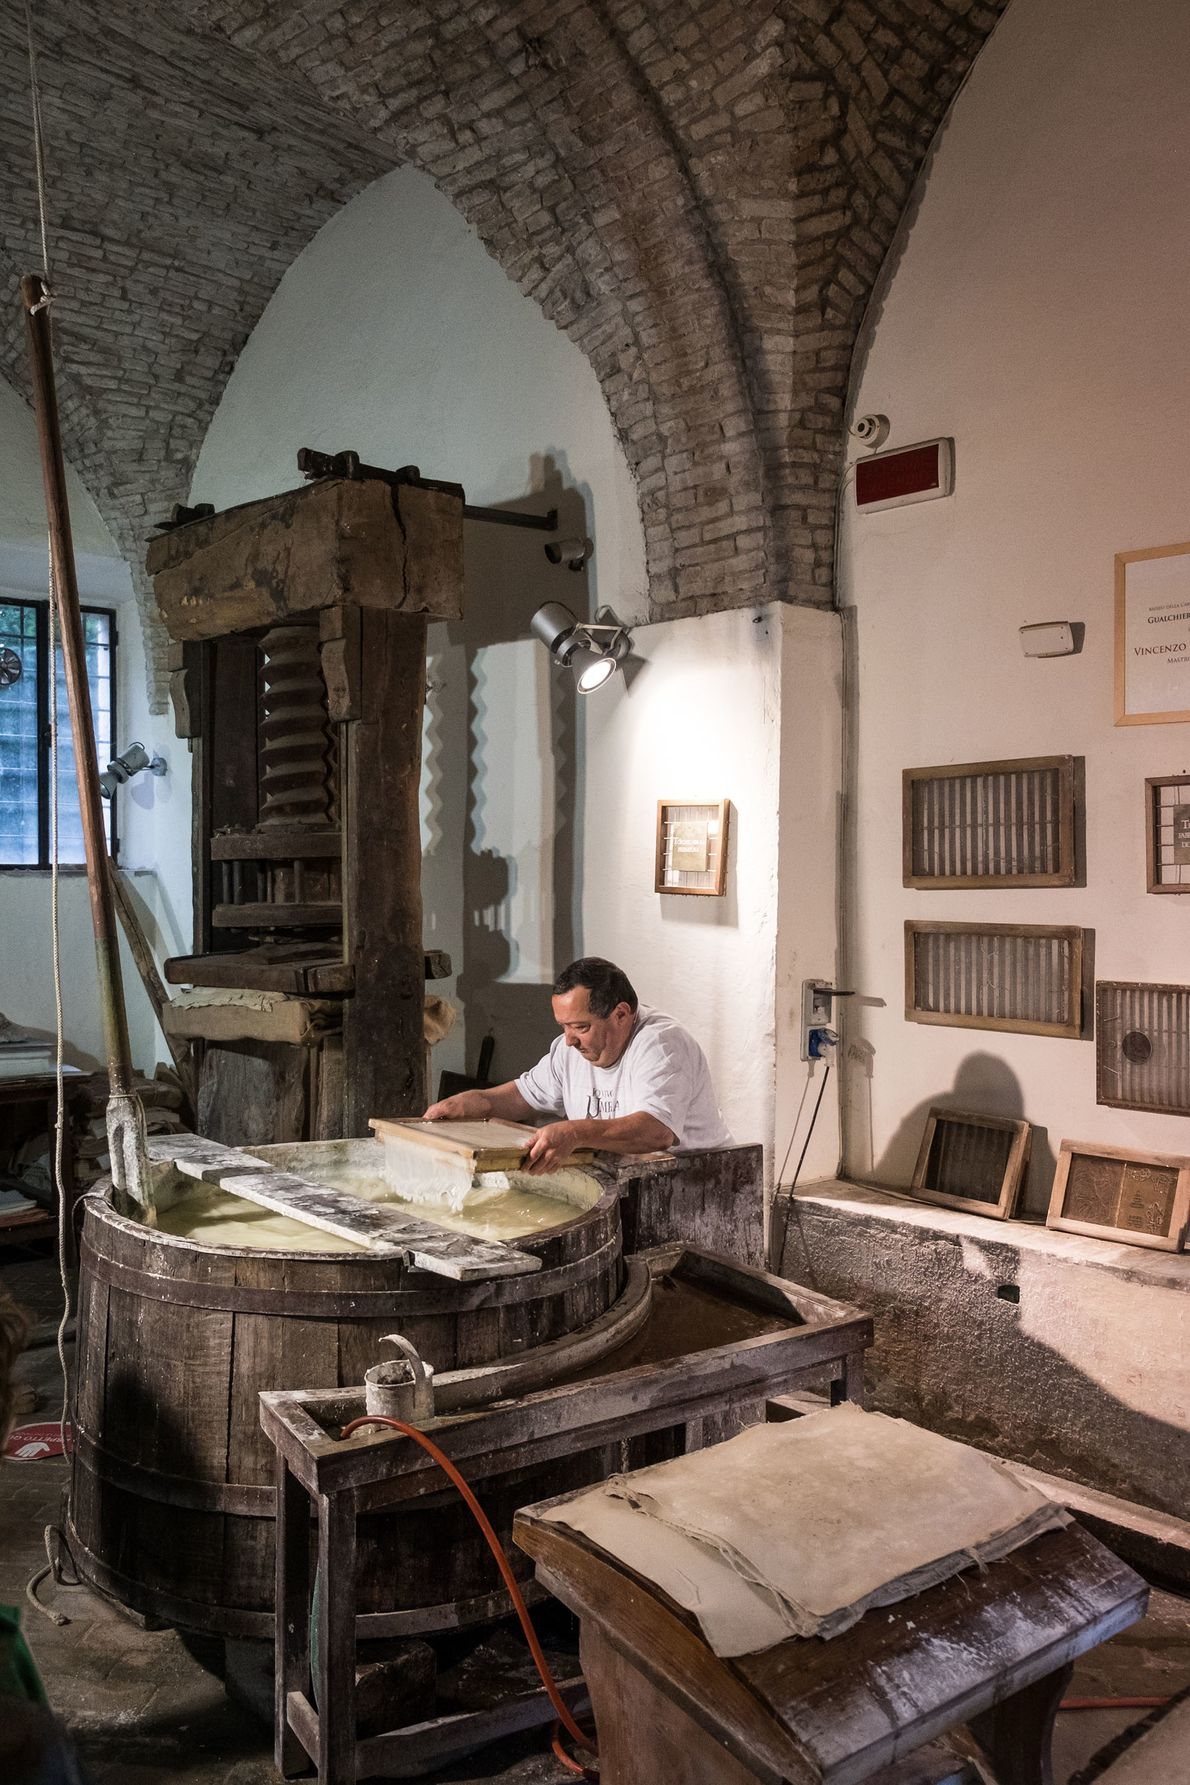 Museum craftsman Mastro Cartaio making paper in Fabriano's Paper and Watermark Museum.